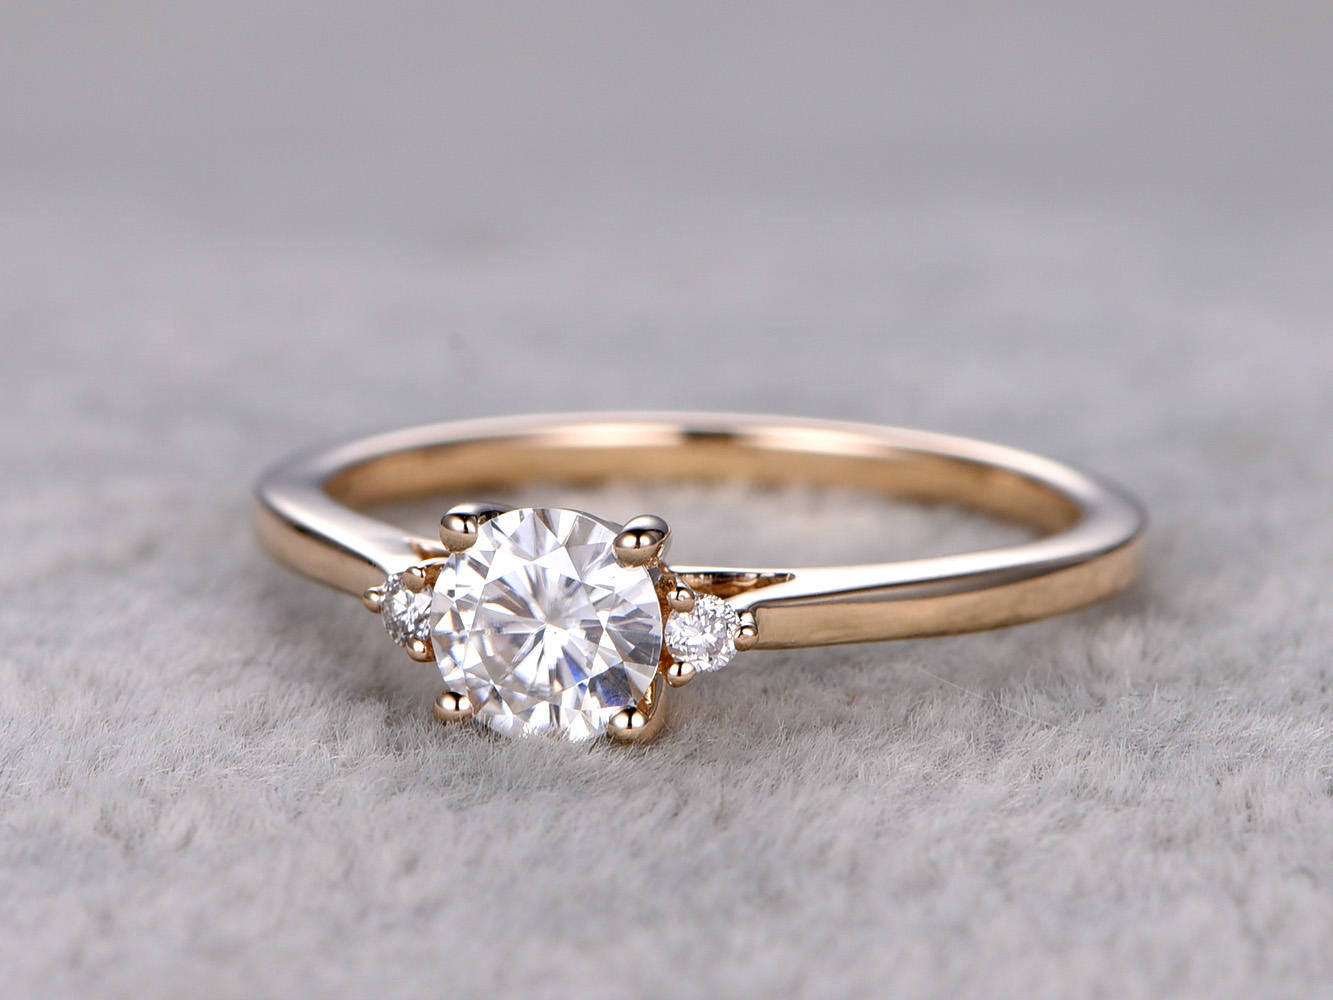 brilliant Moissanite Engagement ring Yellow gold,14k,5mm Round Cut,3 stones,diamond accent,Gemstone Promise Bridal Ring,Anniversary Ring